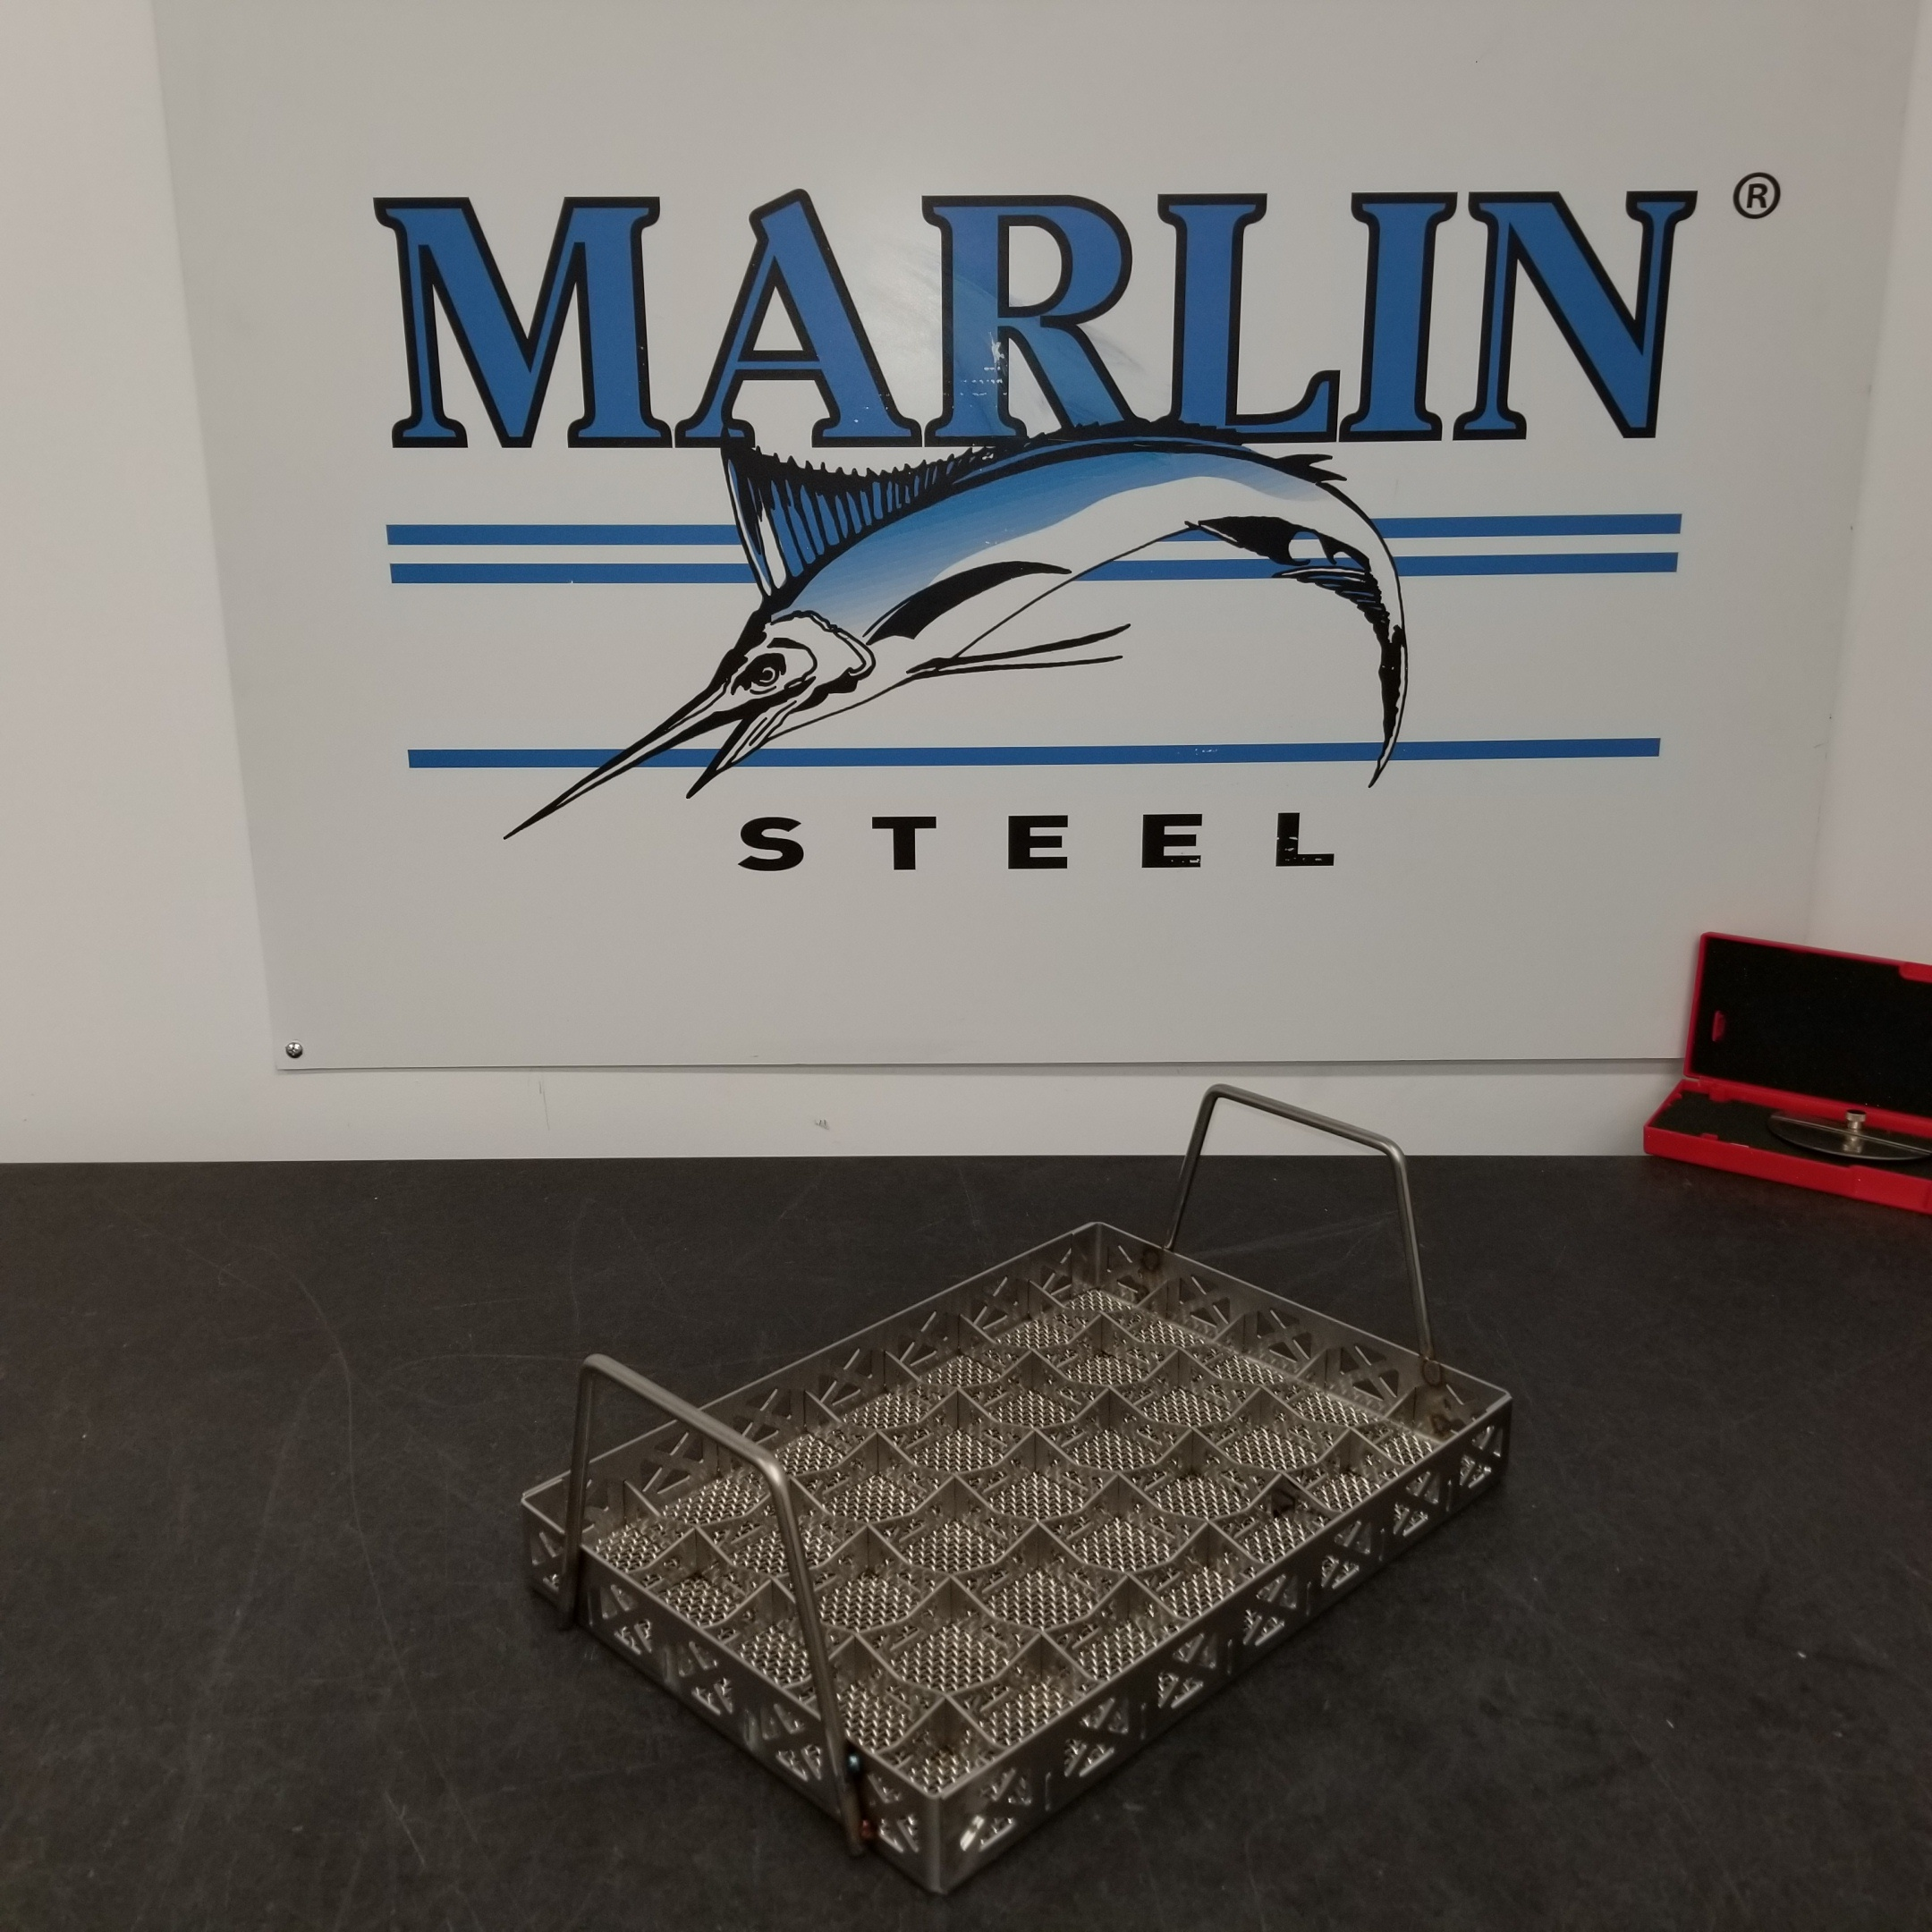 This custom wire basket uses handles and dividers to create something that's easy to handle and keeps parts safe.